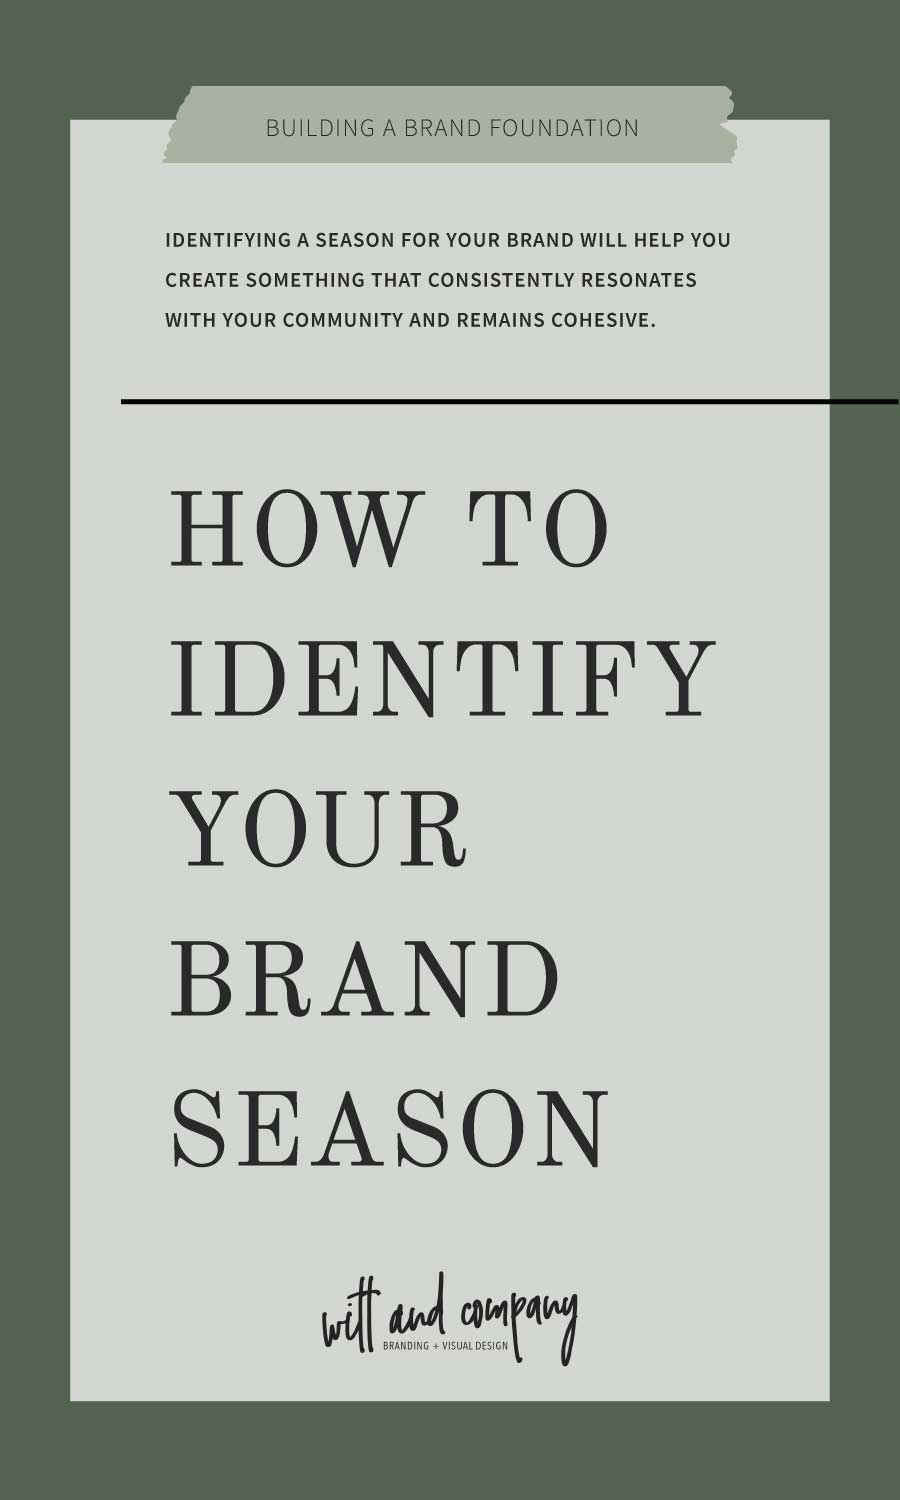 How to Identify Your Brand Season